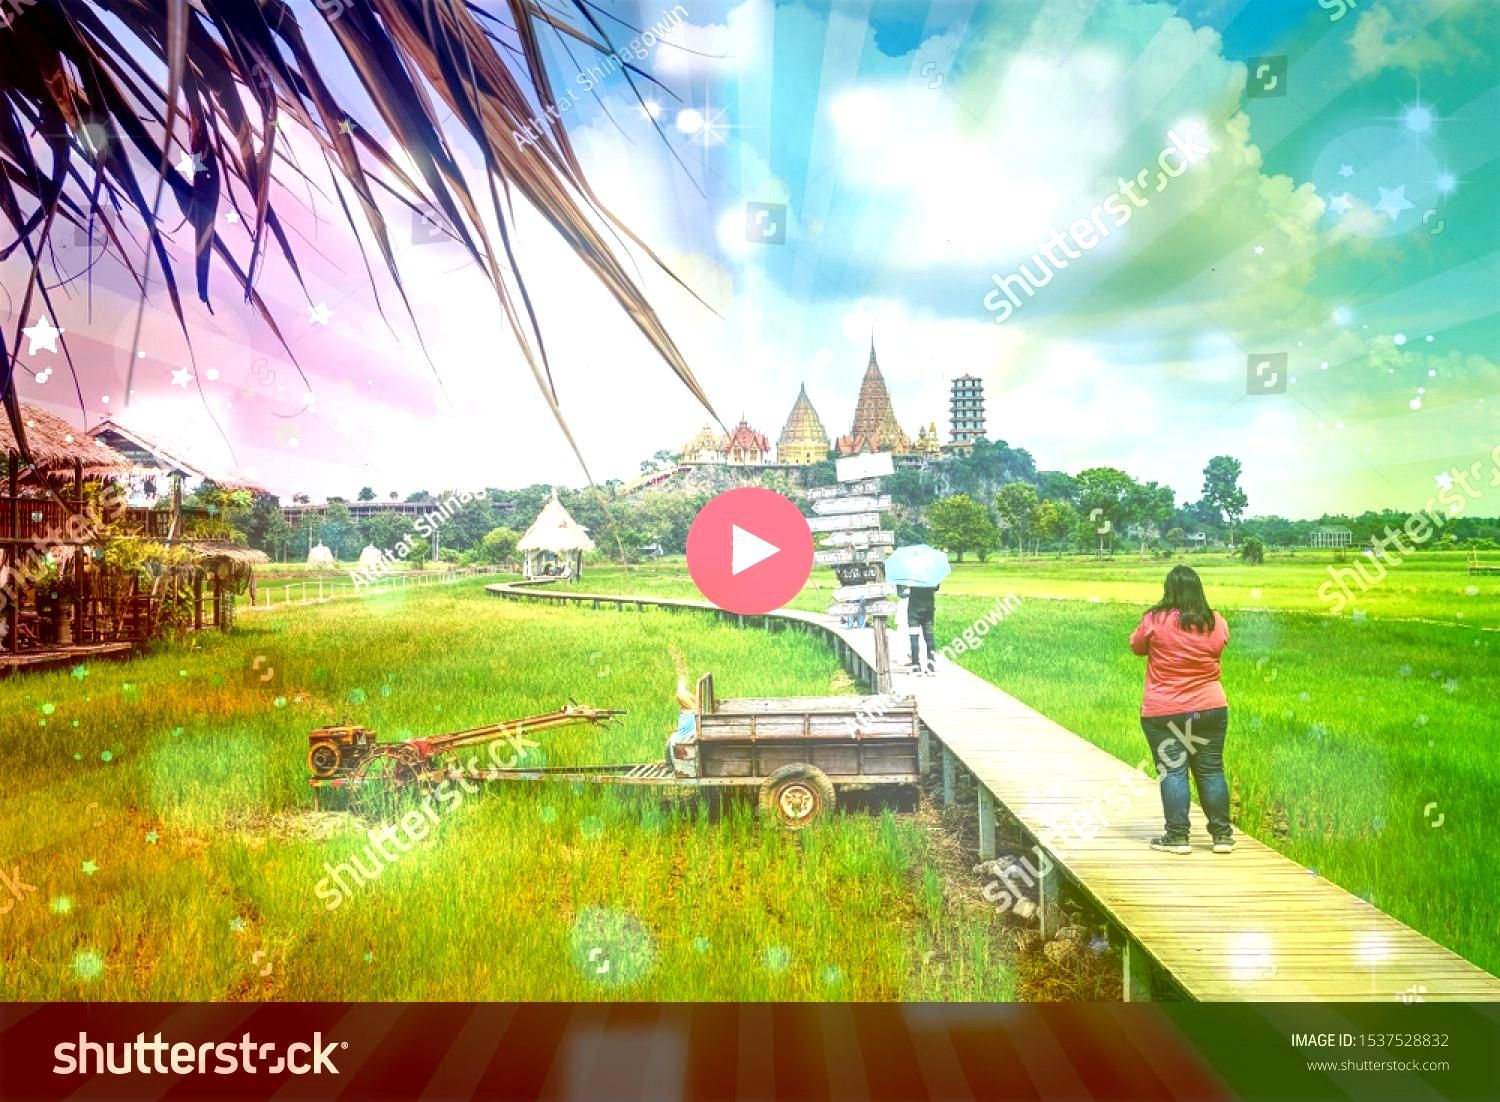 September 2019 Tourist woman stand on the bridge and take photo Tiger cave Temple Editorial image THAILANDKANCHANABURI9 September 2019 Tourist woman stand on the bridge a...